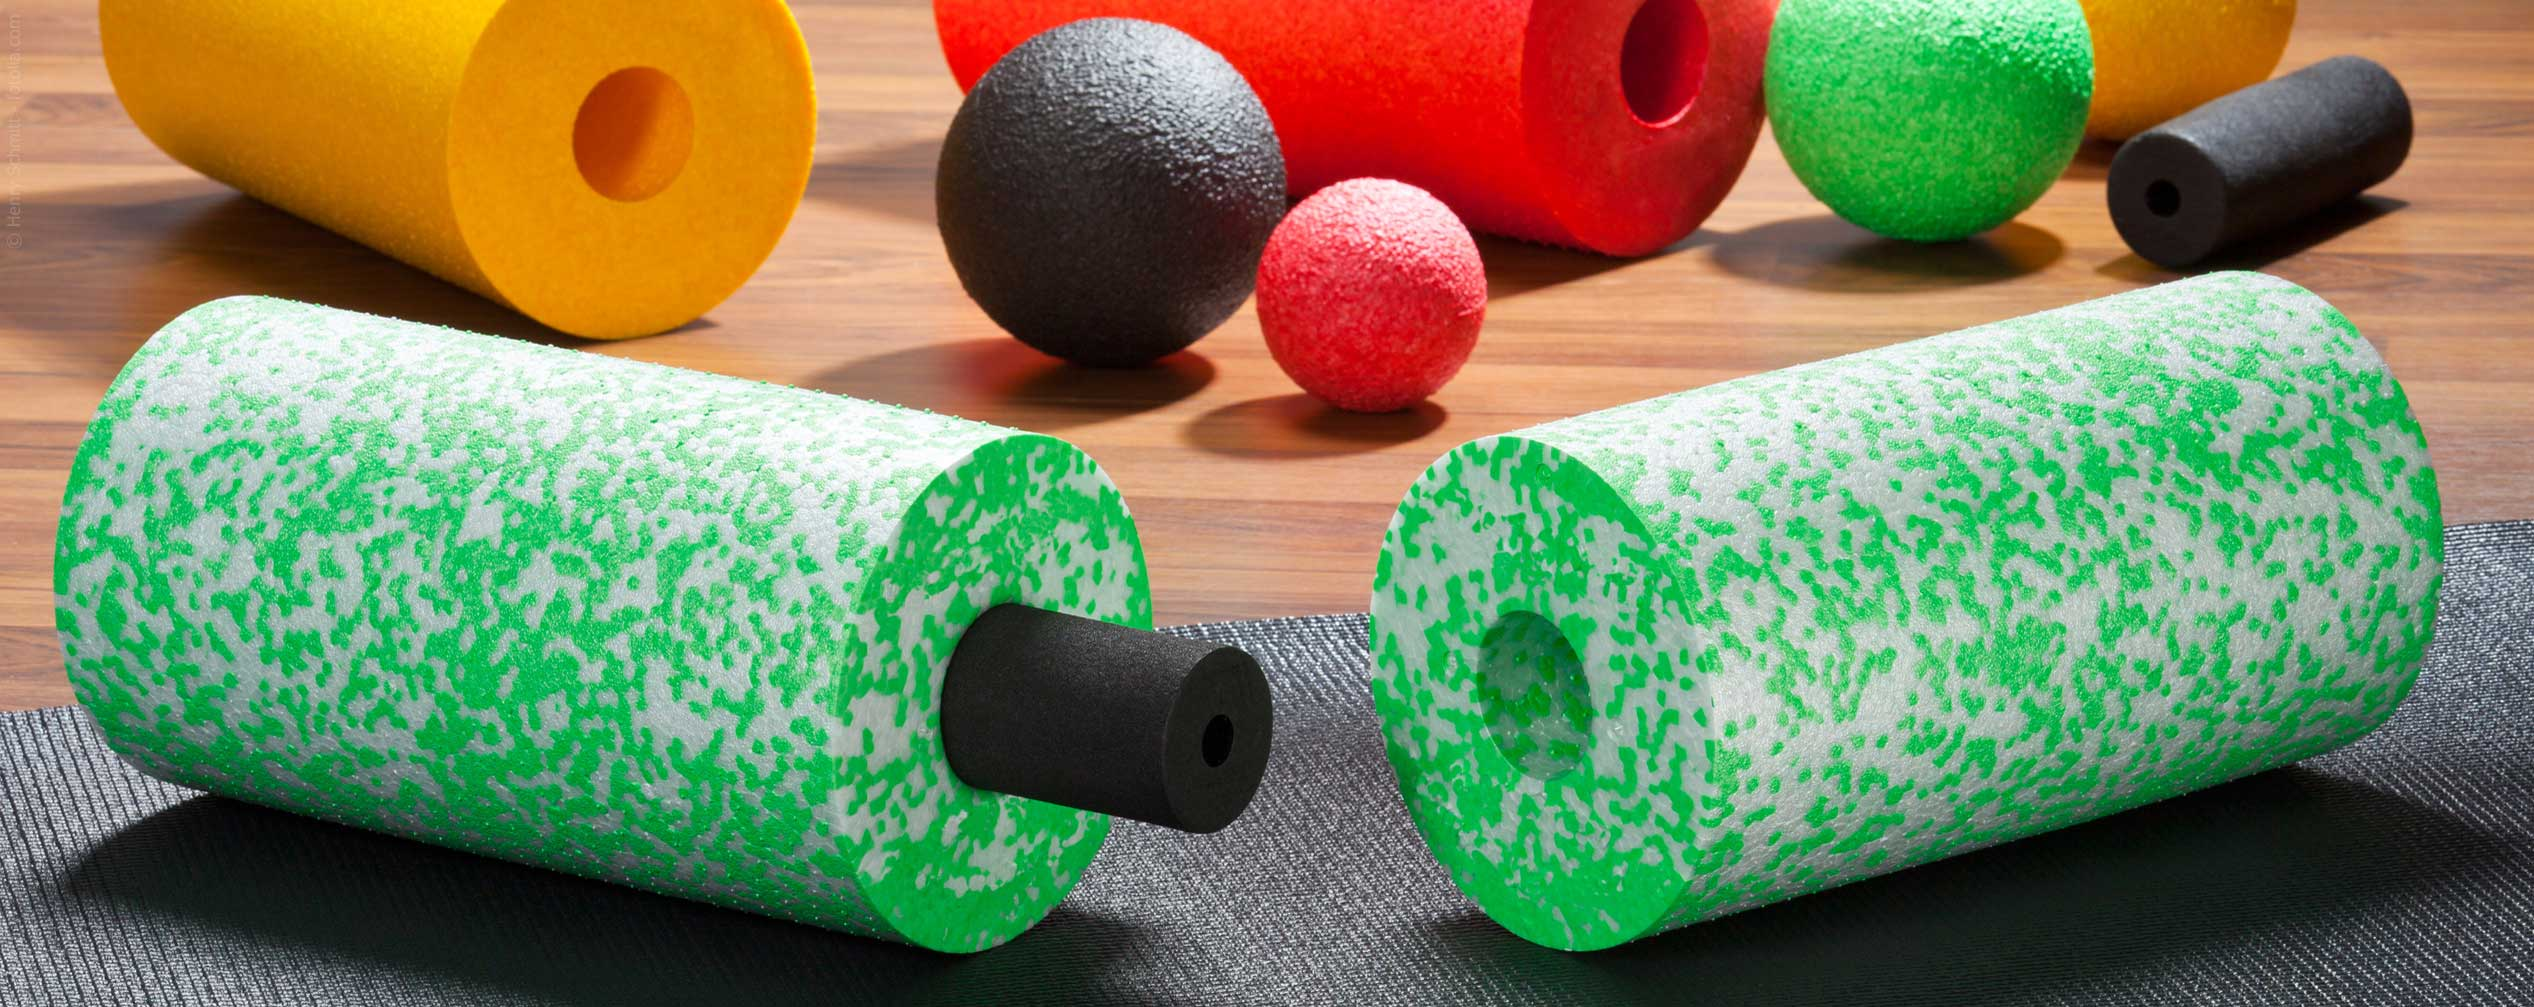 Coloured fascia rollers and massage balls